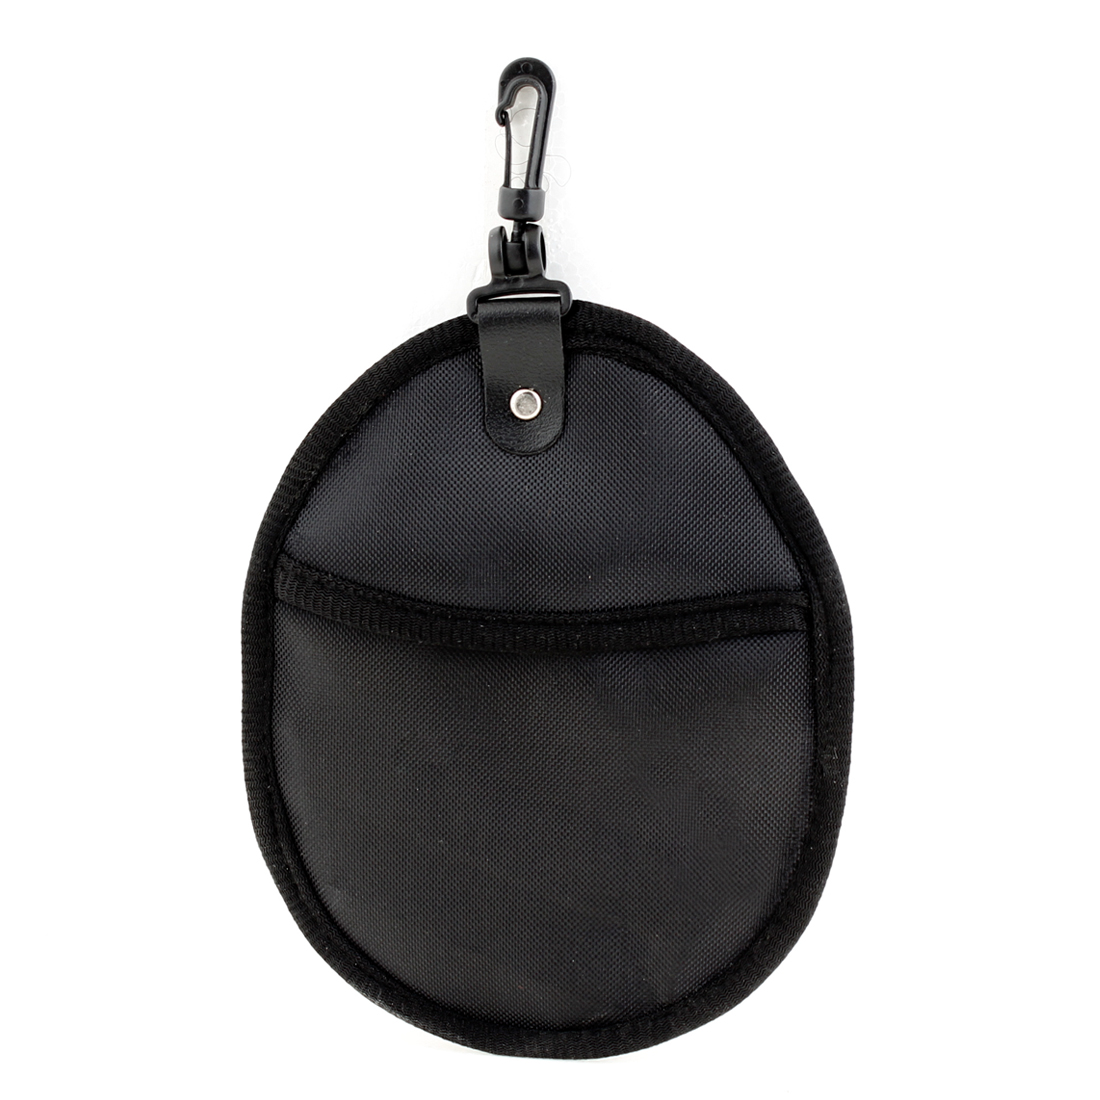 Travel Oval Shape 2 Pockets Filter Nylon Camera Lens Pouch Bag w Hook